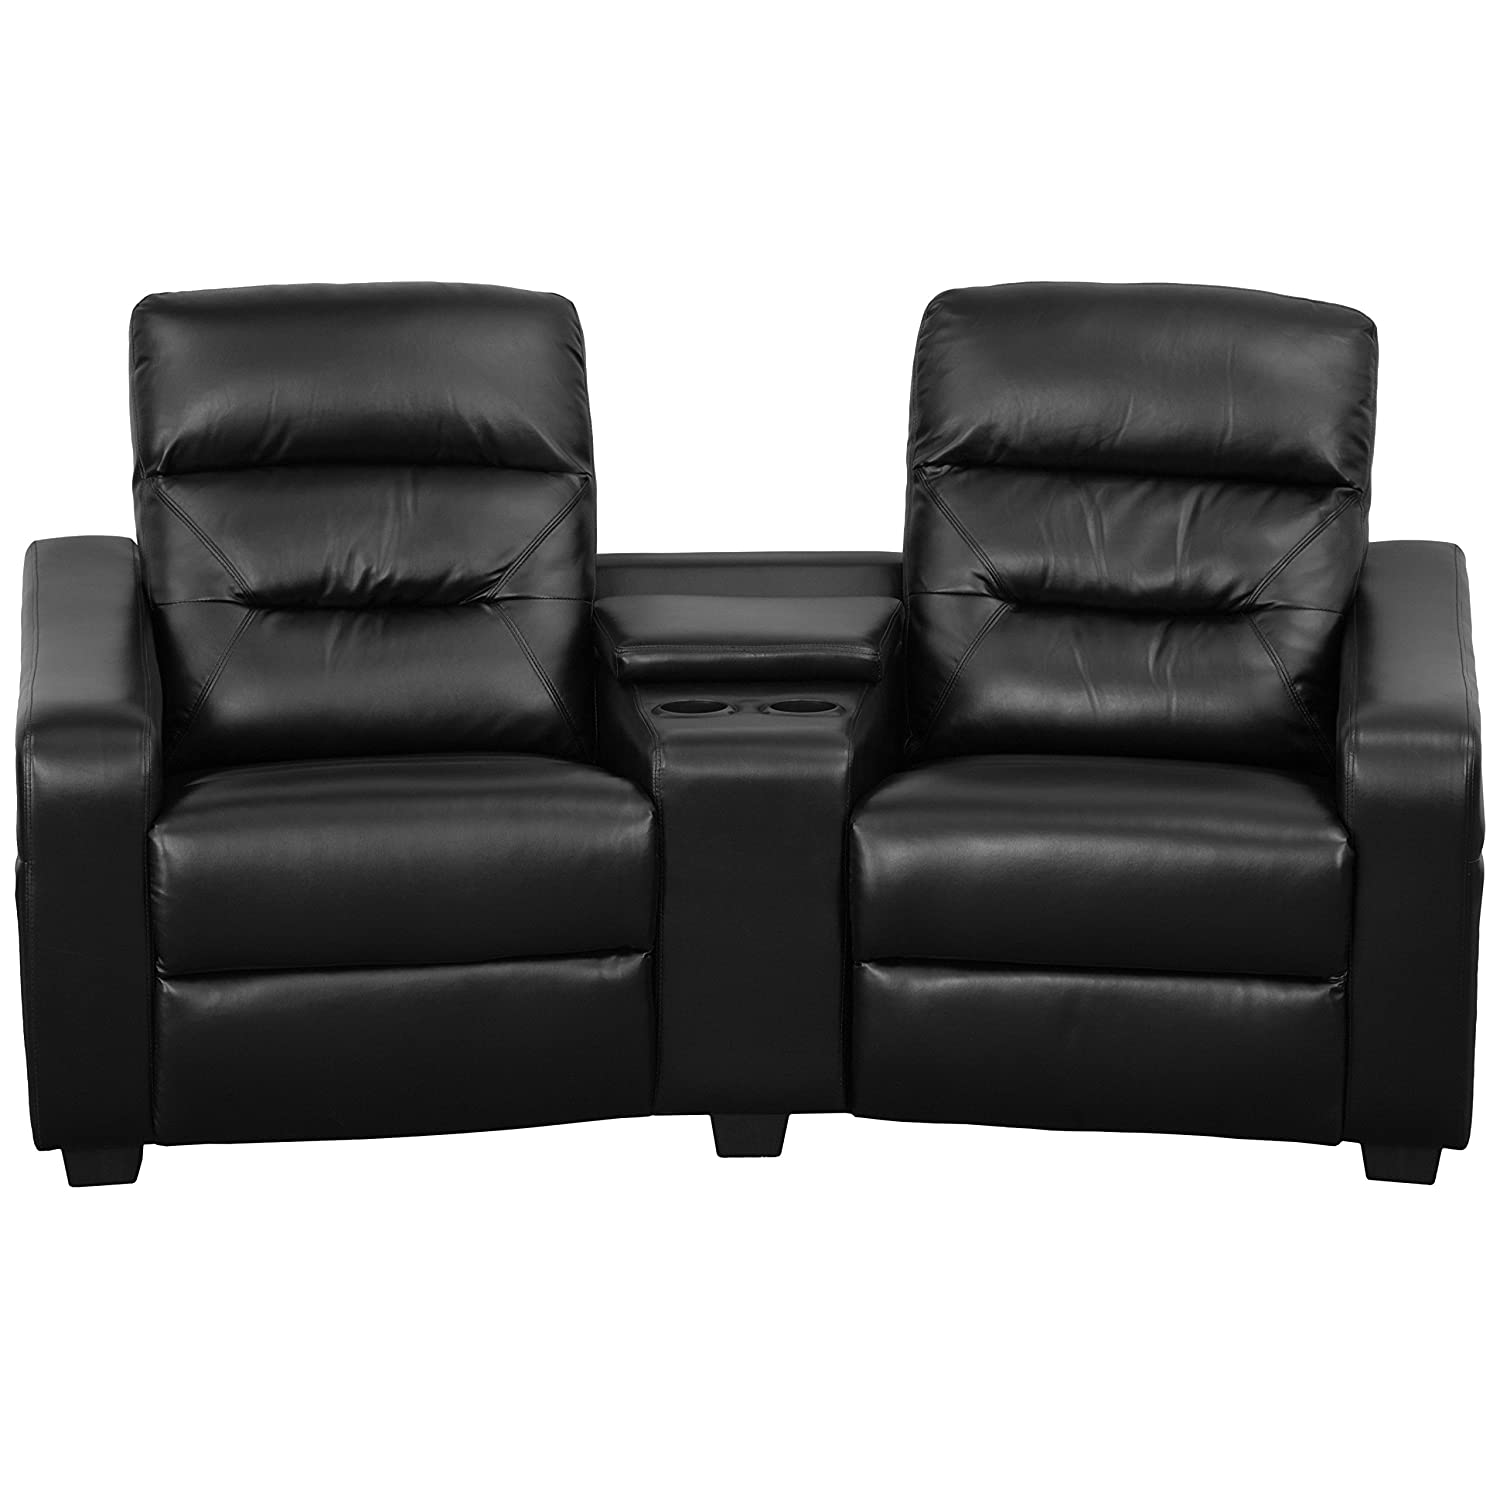 Flash Furniture Futura Series 2-Seat Reclining Black Leather Theater Seating Unit with Cup Holders  sc 1 st  Amazon.com : 2 seater theatre recliner - islam-shia.org